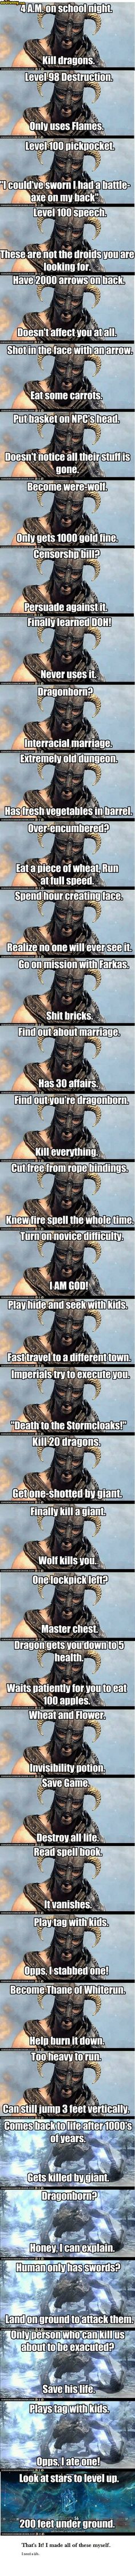 All these Skyrim memes are beautiful :')